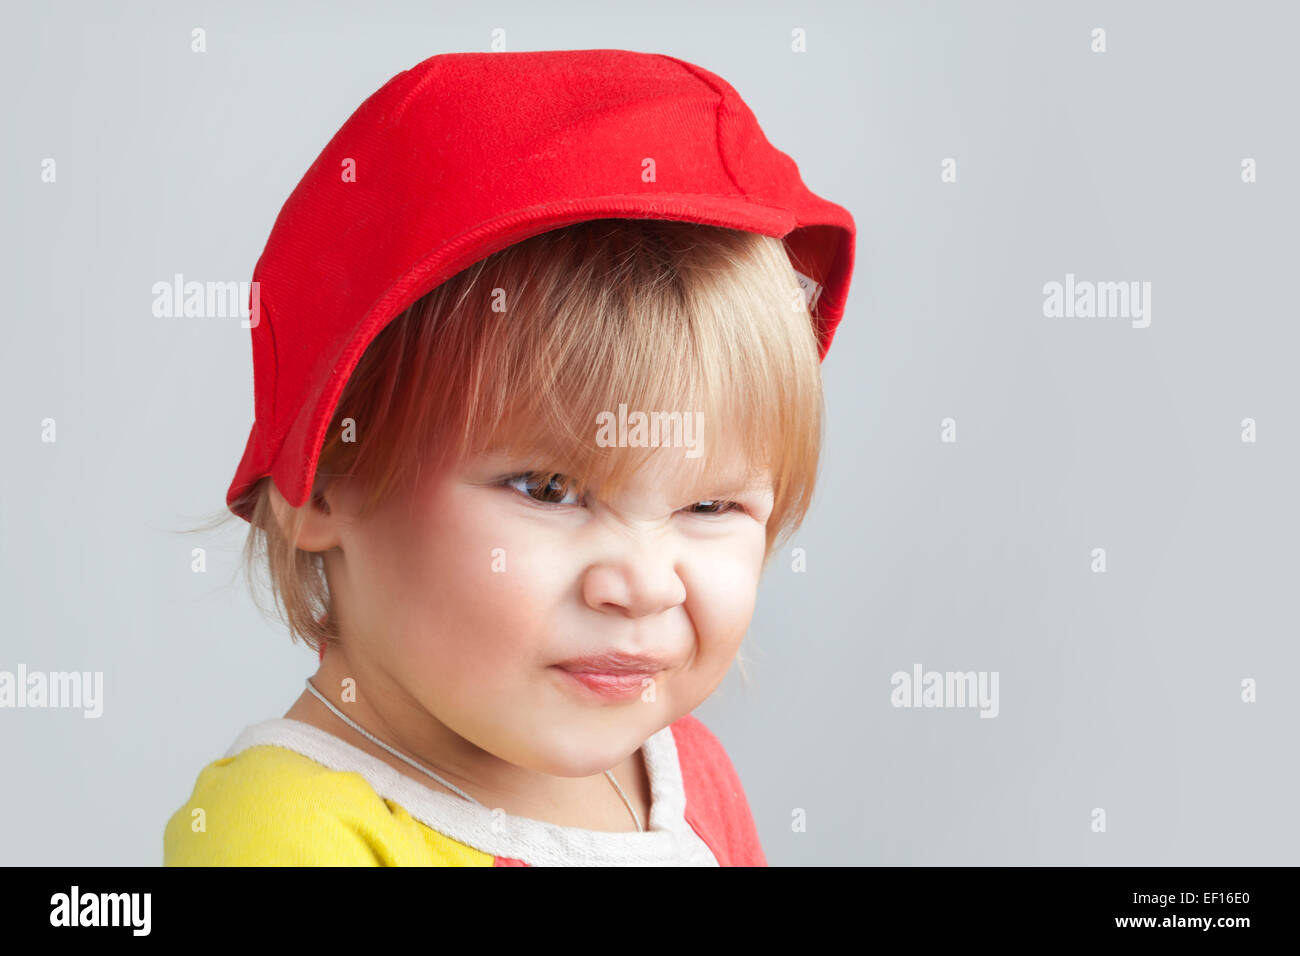 31c58e030 Girl Red Baseball Cap Stock Photos & Girl Red Baseball Cap Stock ...